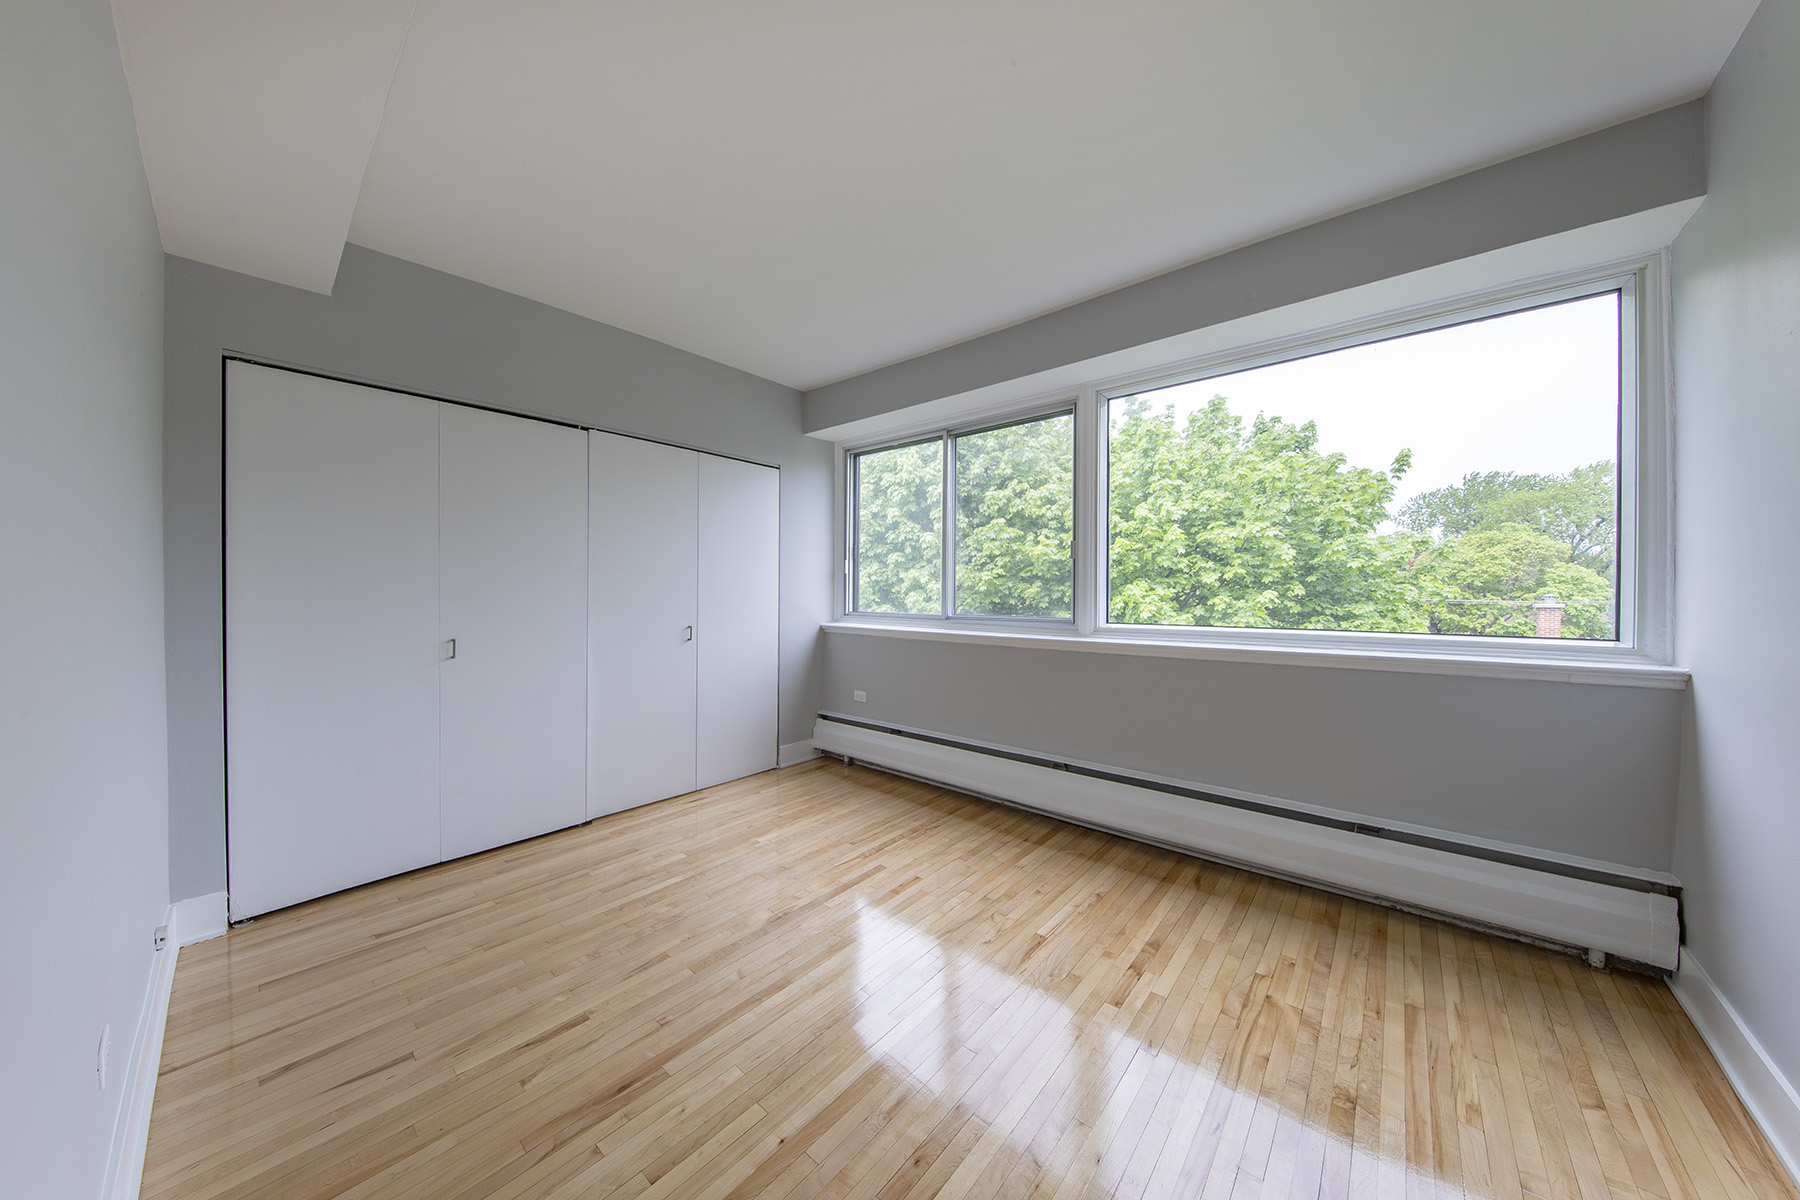 1 bedroom Apartments for rent in Cote-St-Luc at 5765 Cote St-Luc - Photo 04 - RentQuebecApartments – L401532